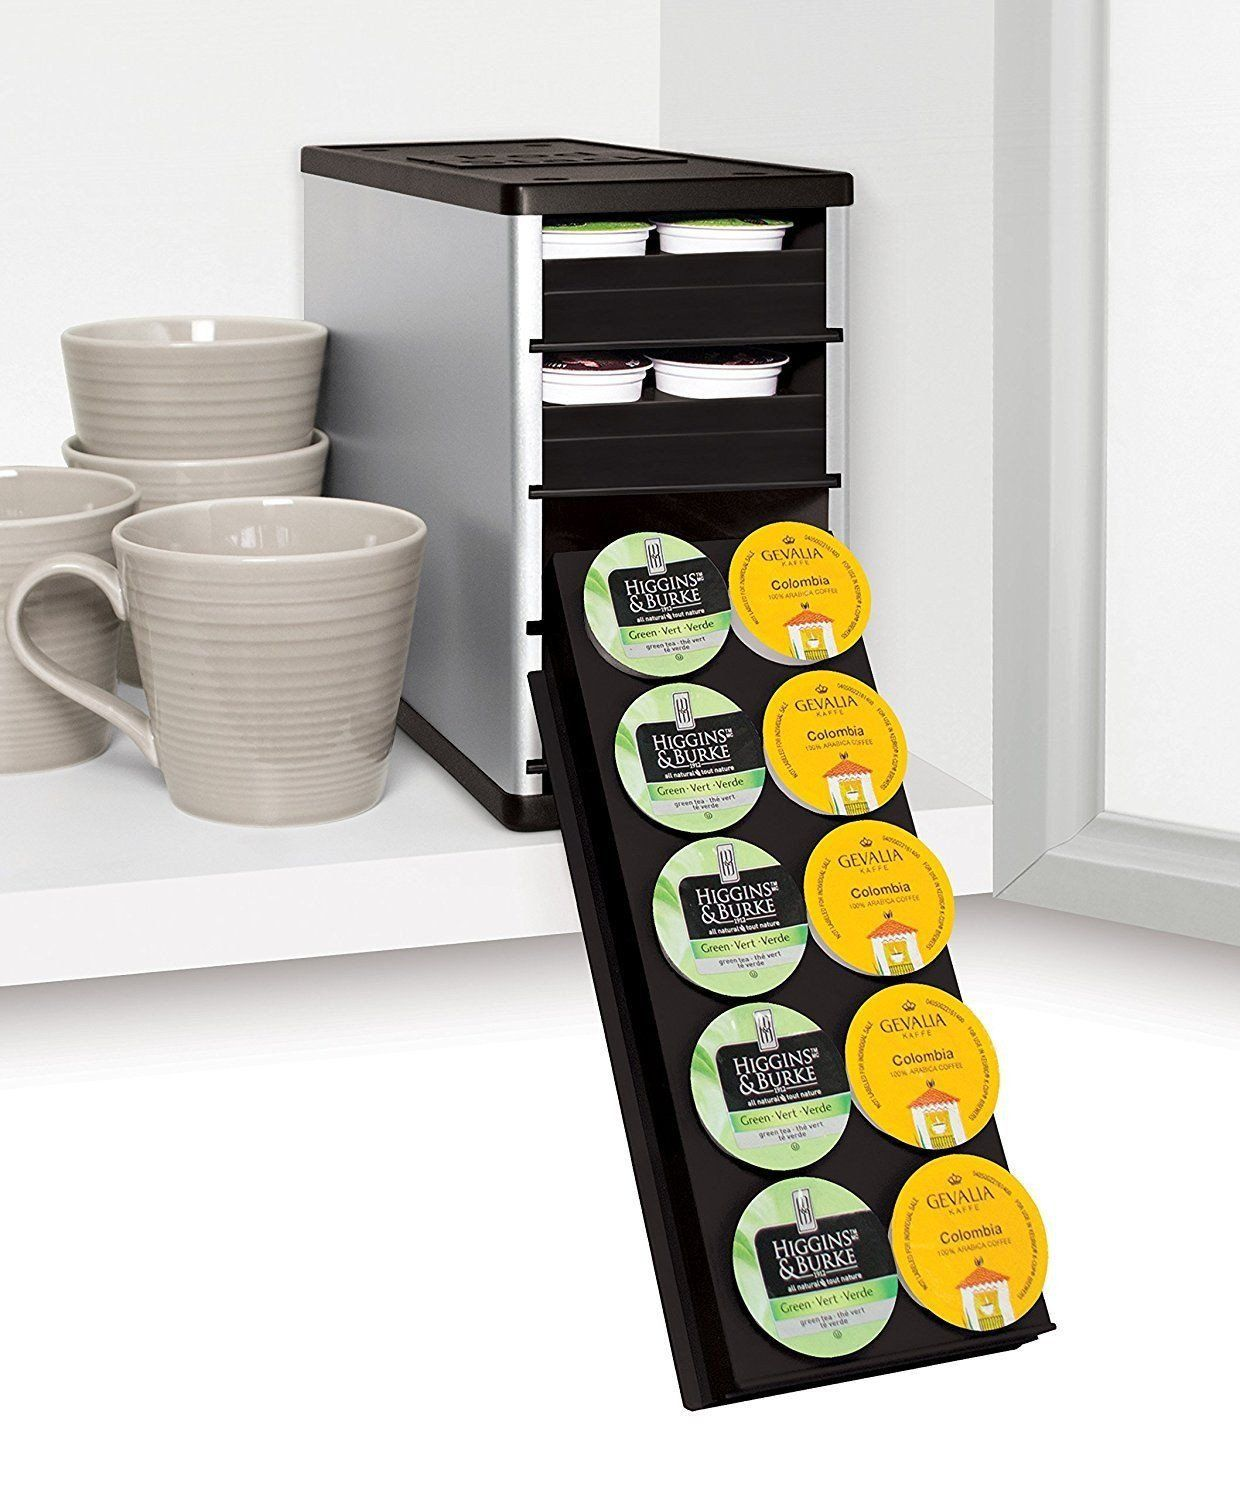 Youcopia Coffeestack 40 K Cup Amp Coffee Pod Cabinet Storage